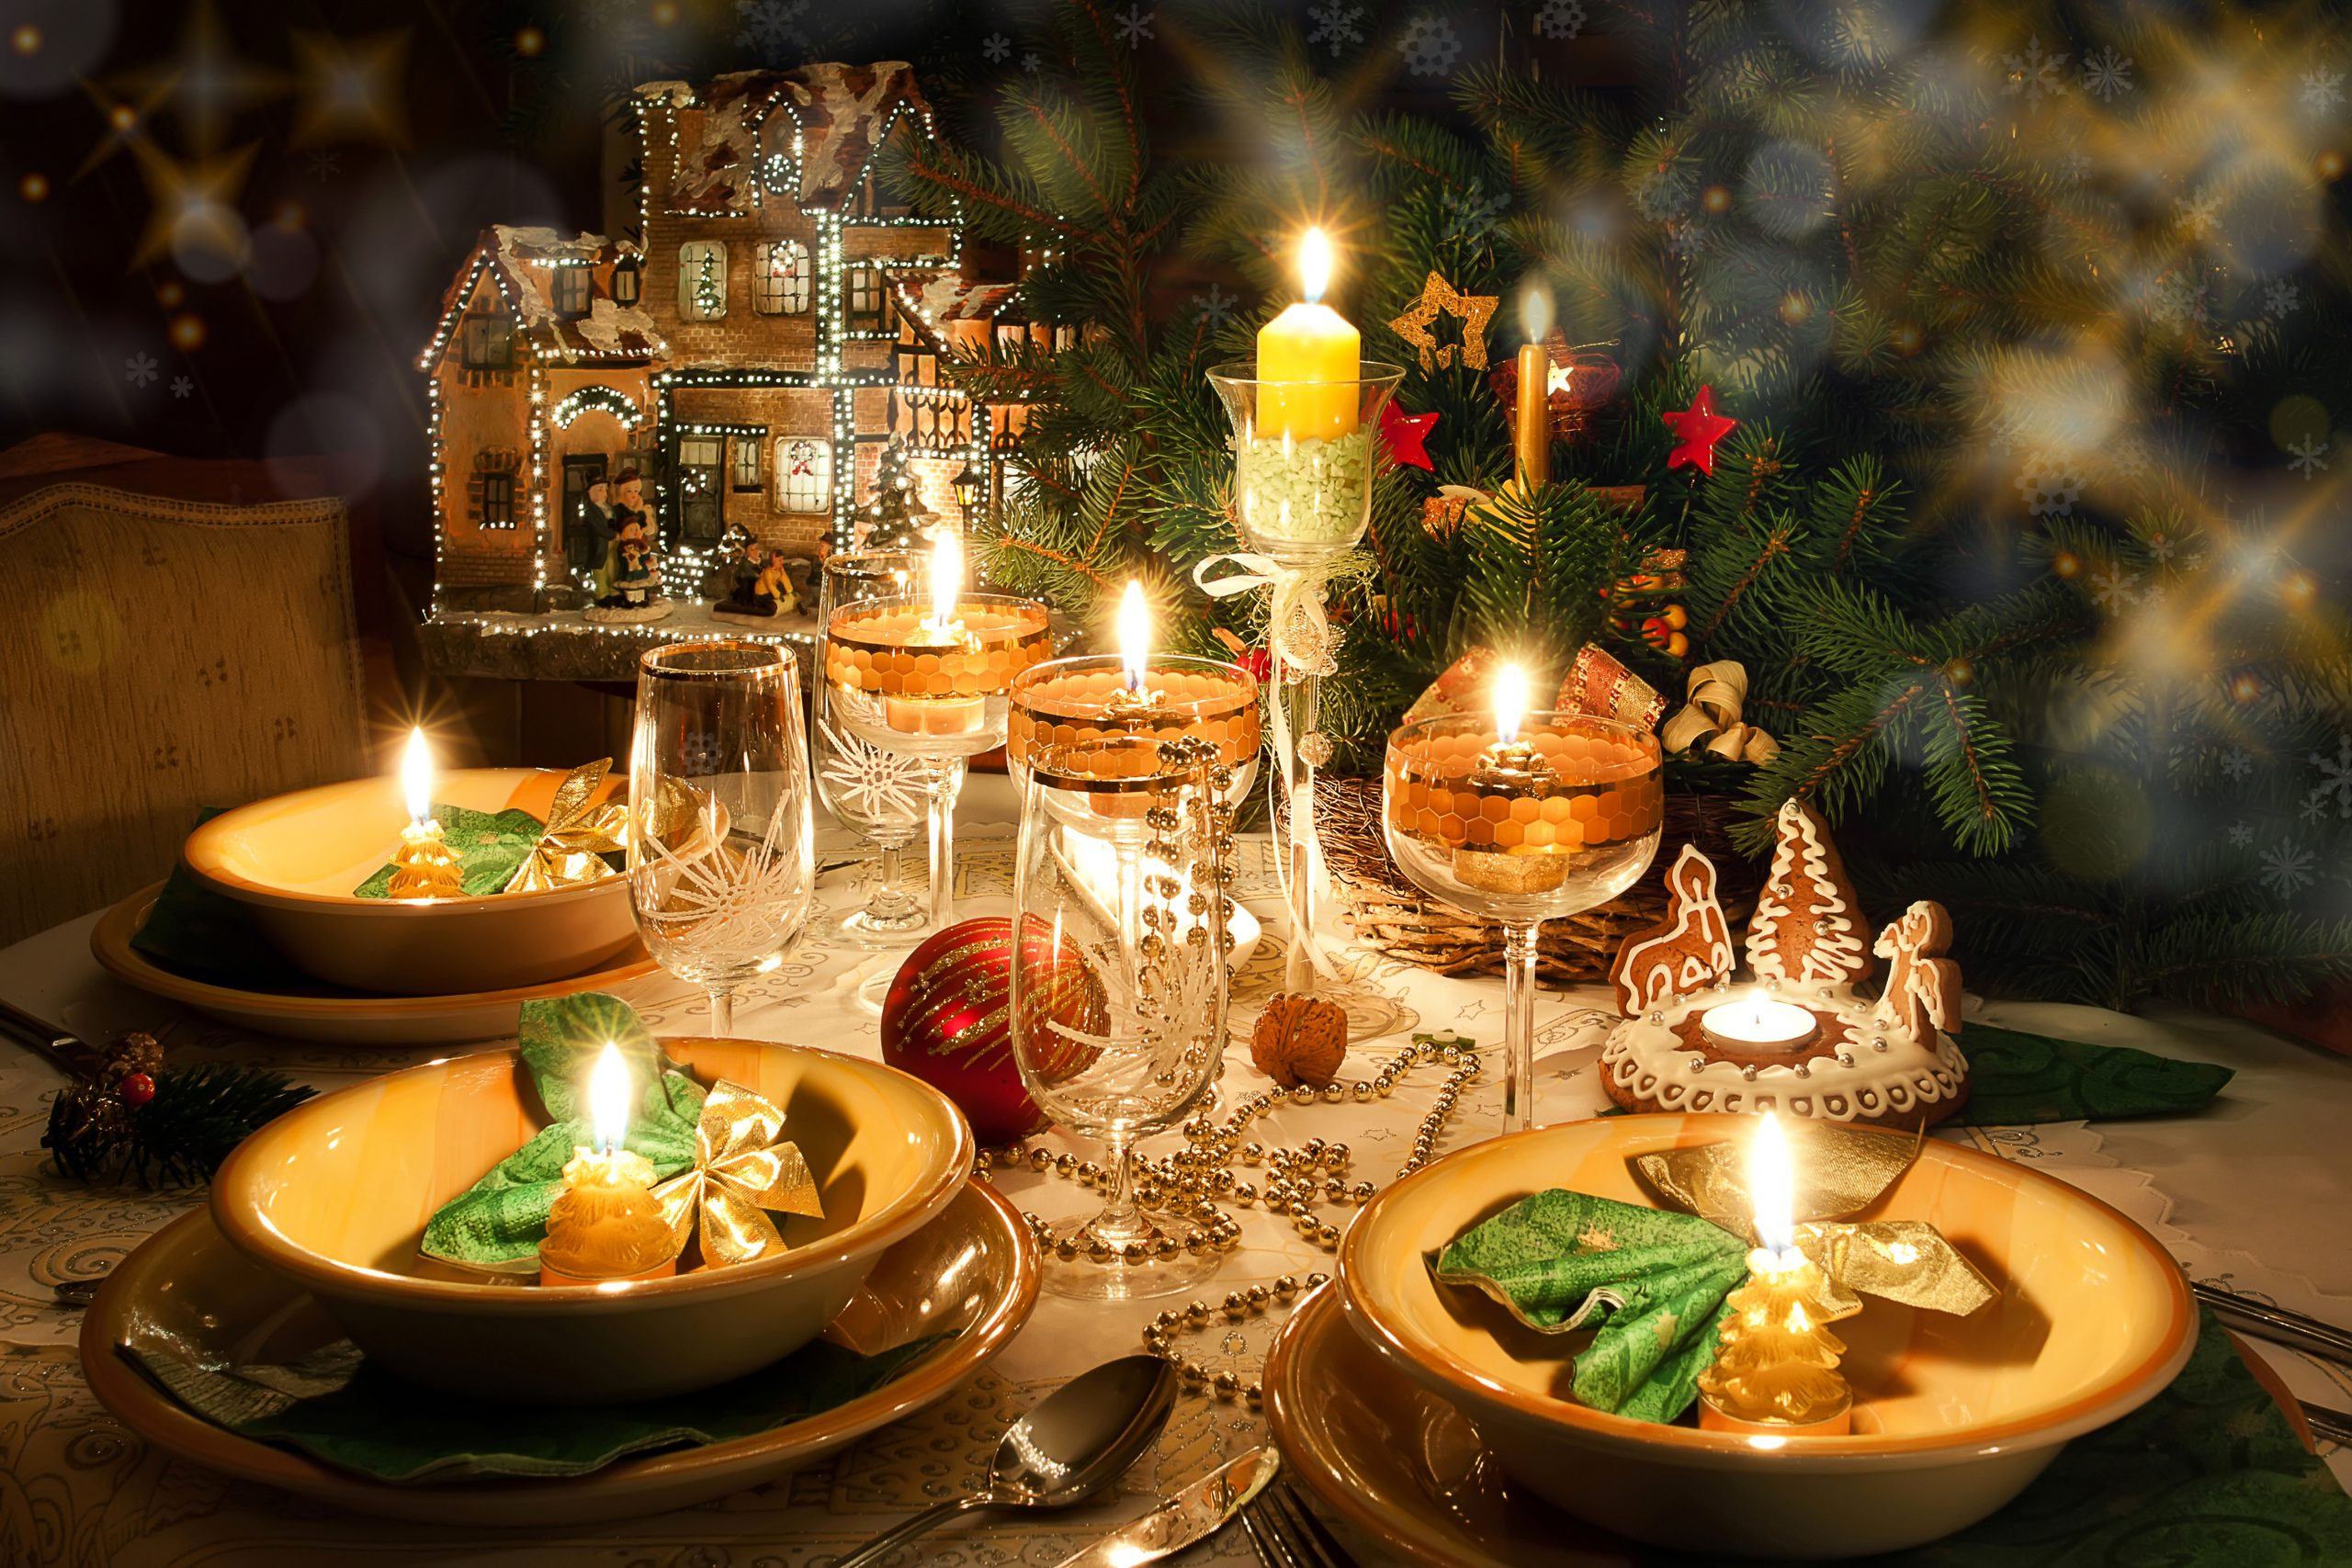 https://cloud.pulse19.ru/uploads/2019/12/christmas_holidays_table_510710-scaled.jpg